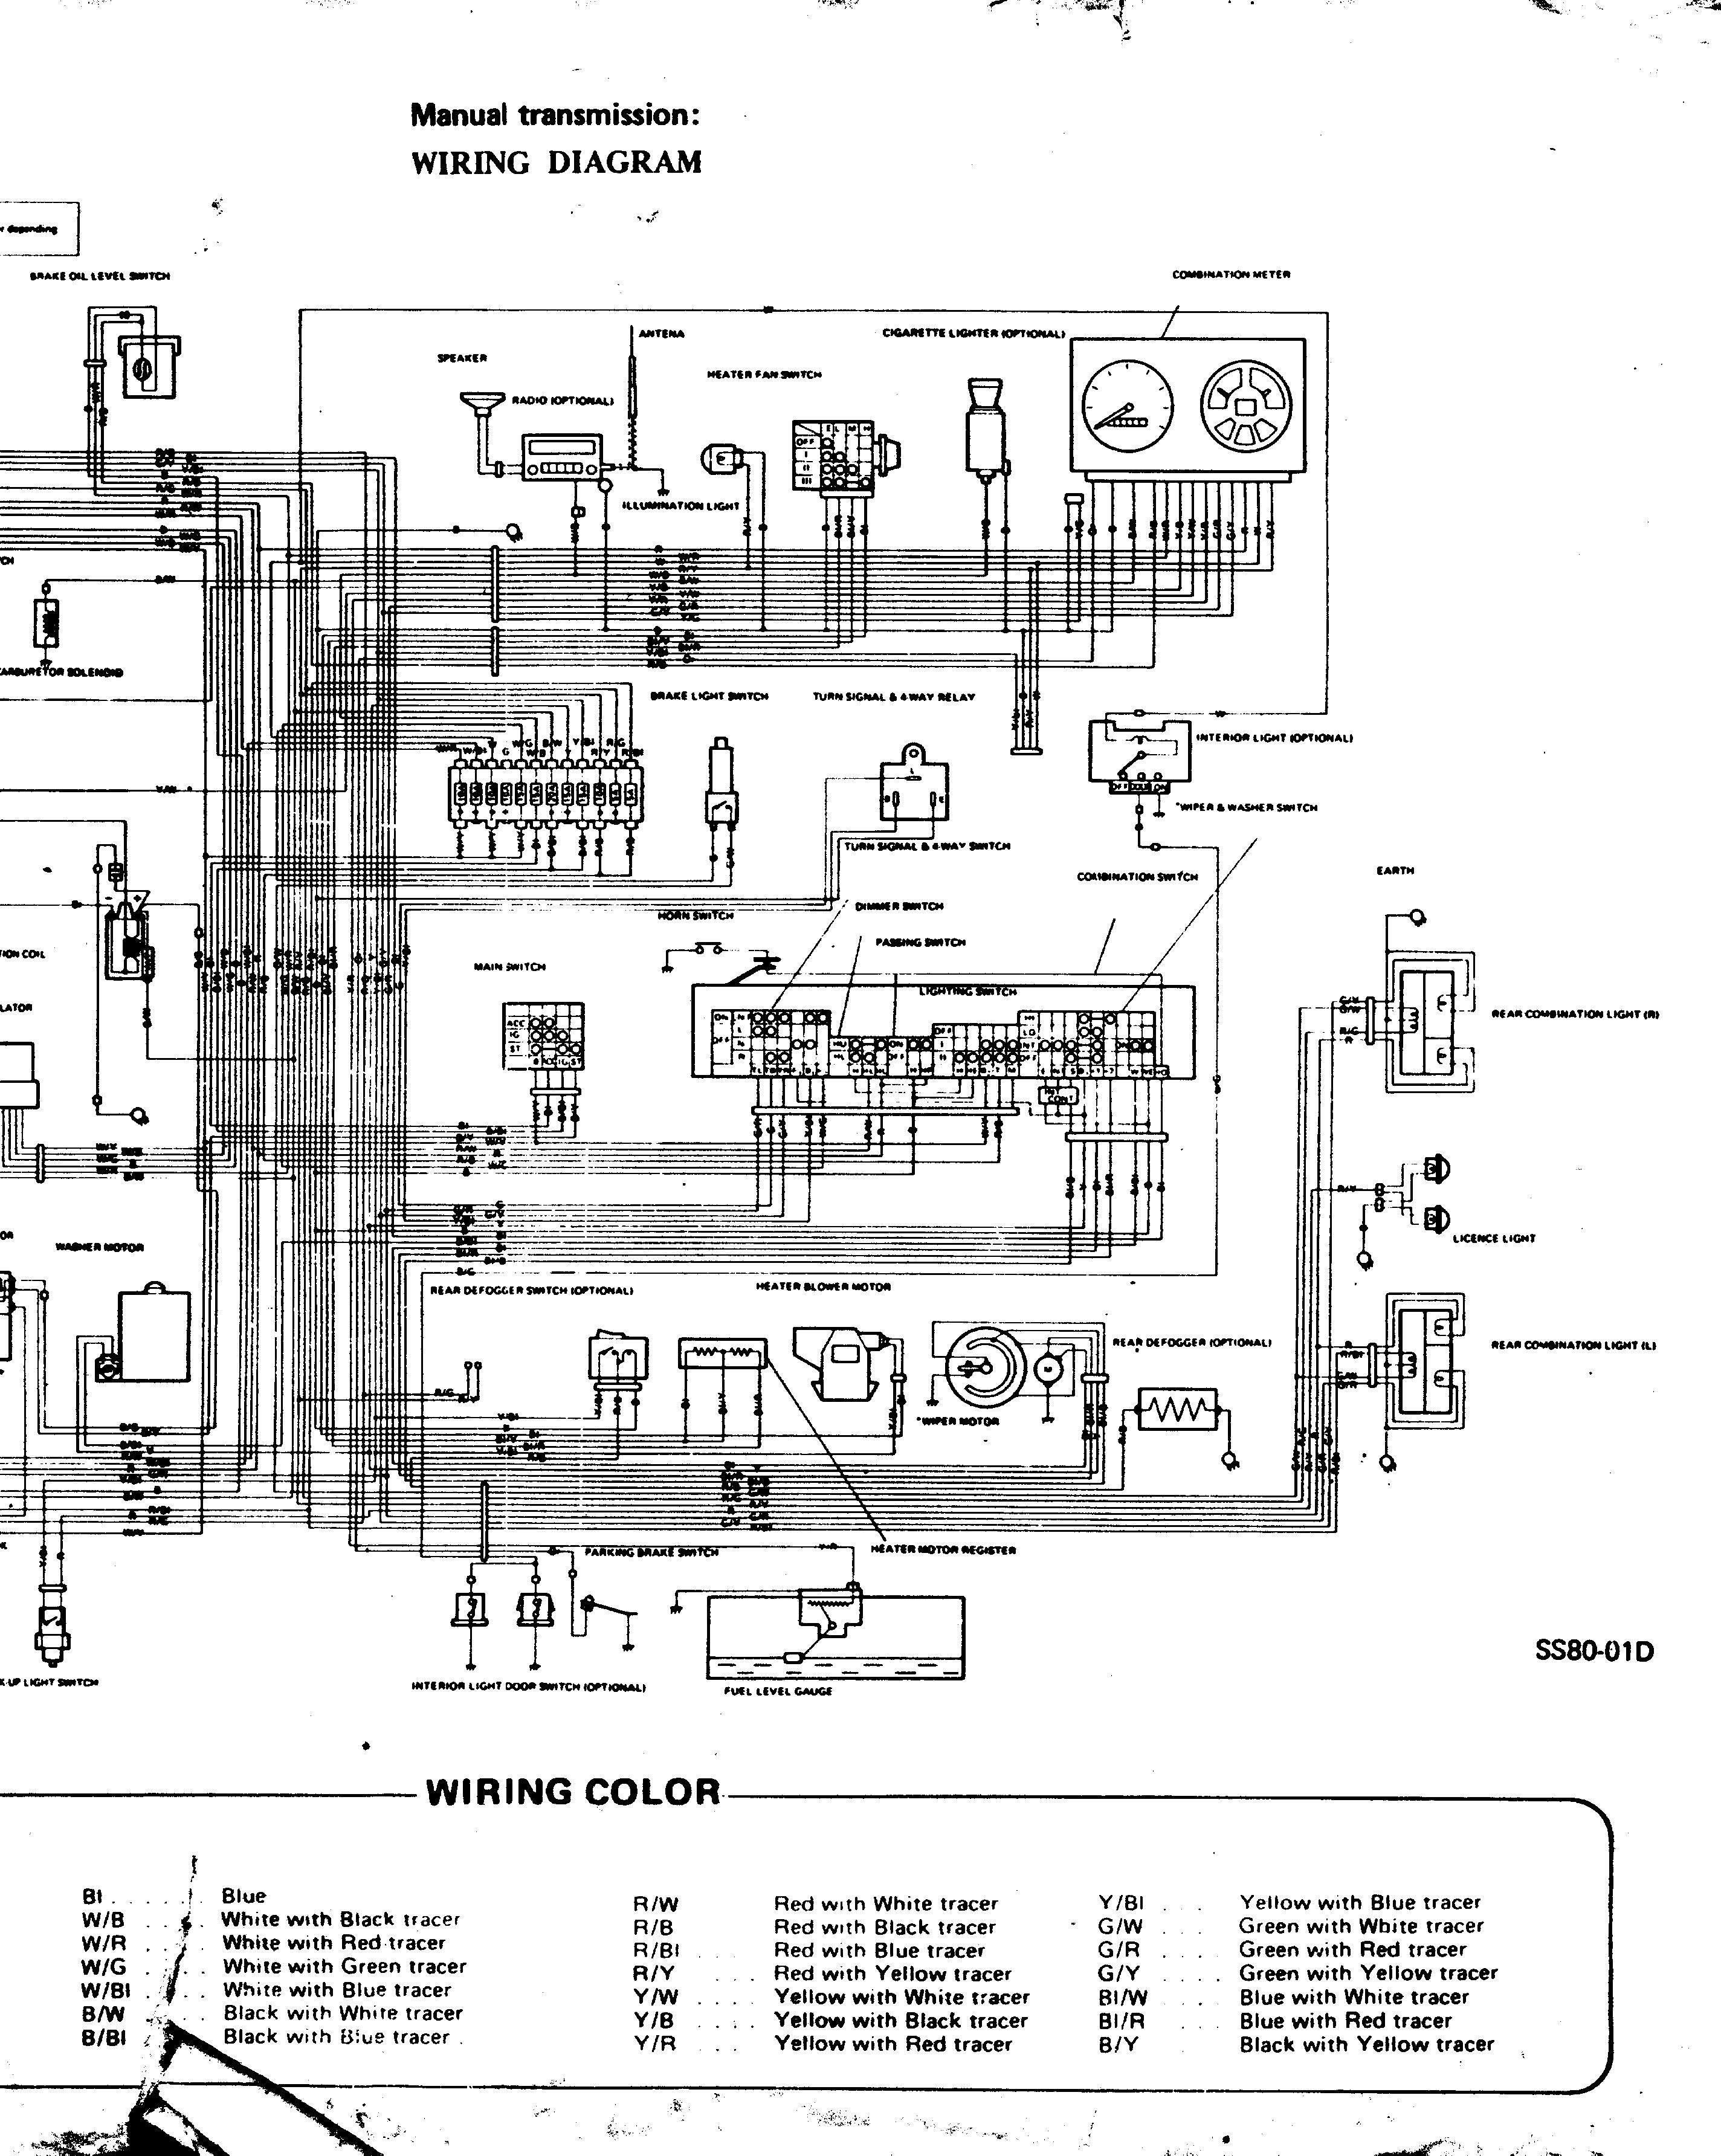 New Wiring Diagram Of Zen Car Con Imagenes Heroe